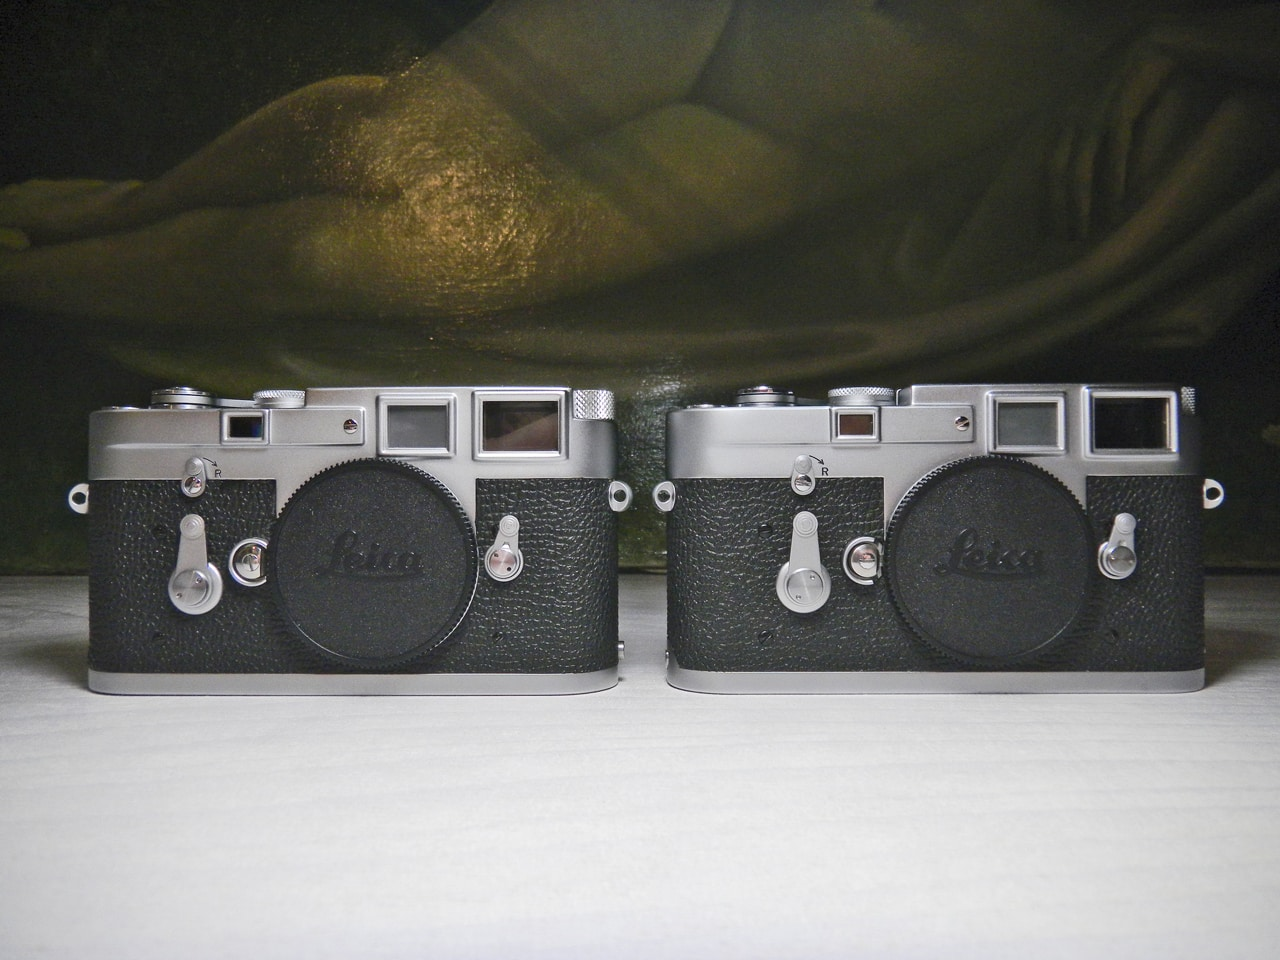 Seeing Double. The story of the matching Leica M3's